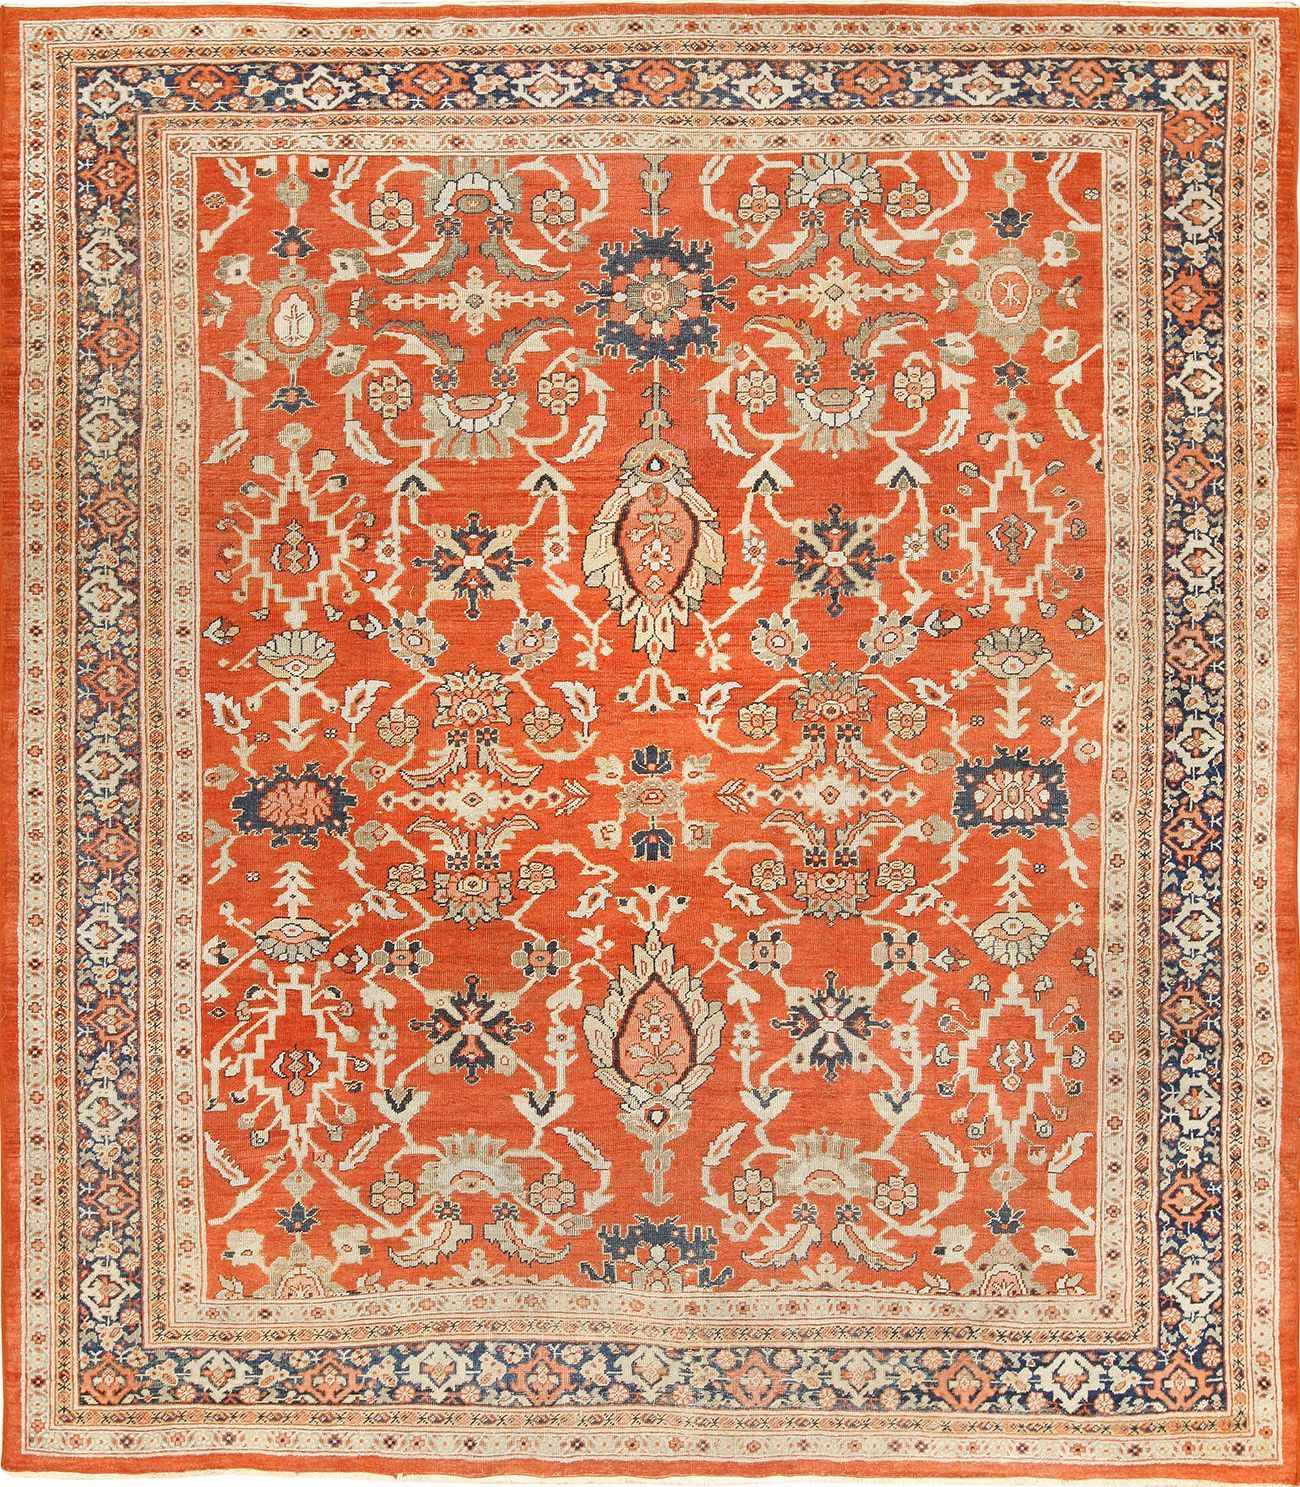 View This Magnificent Rusty Red Background Square Antique Persian Sultanabad Rug 49760 Available For Sale At Nazmiyal Sultanabad Rug Rugs Antique Persian Rug